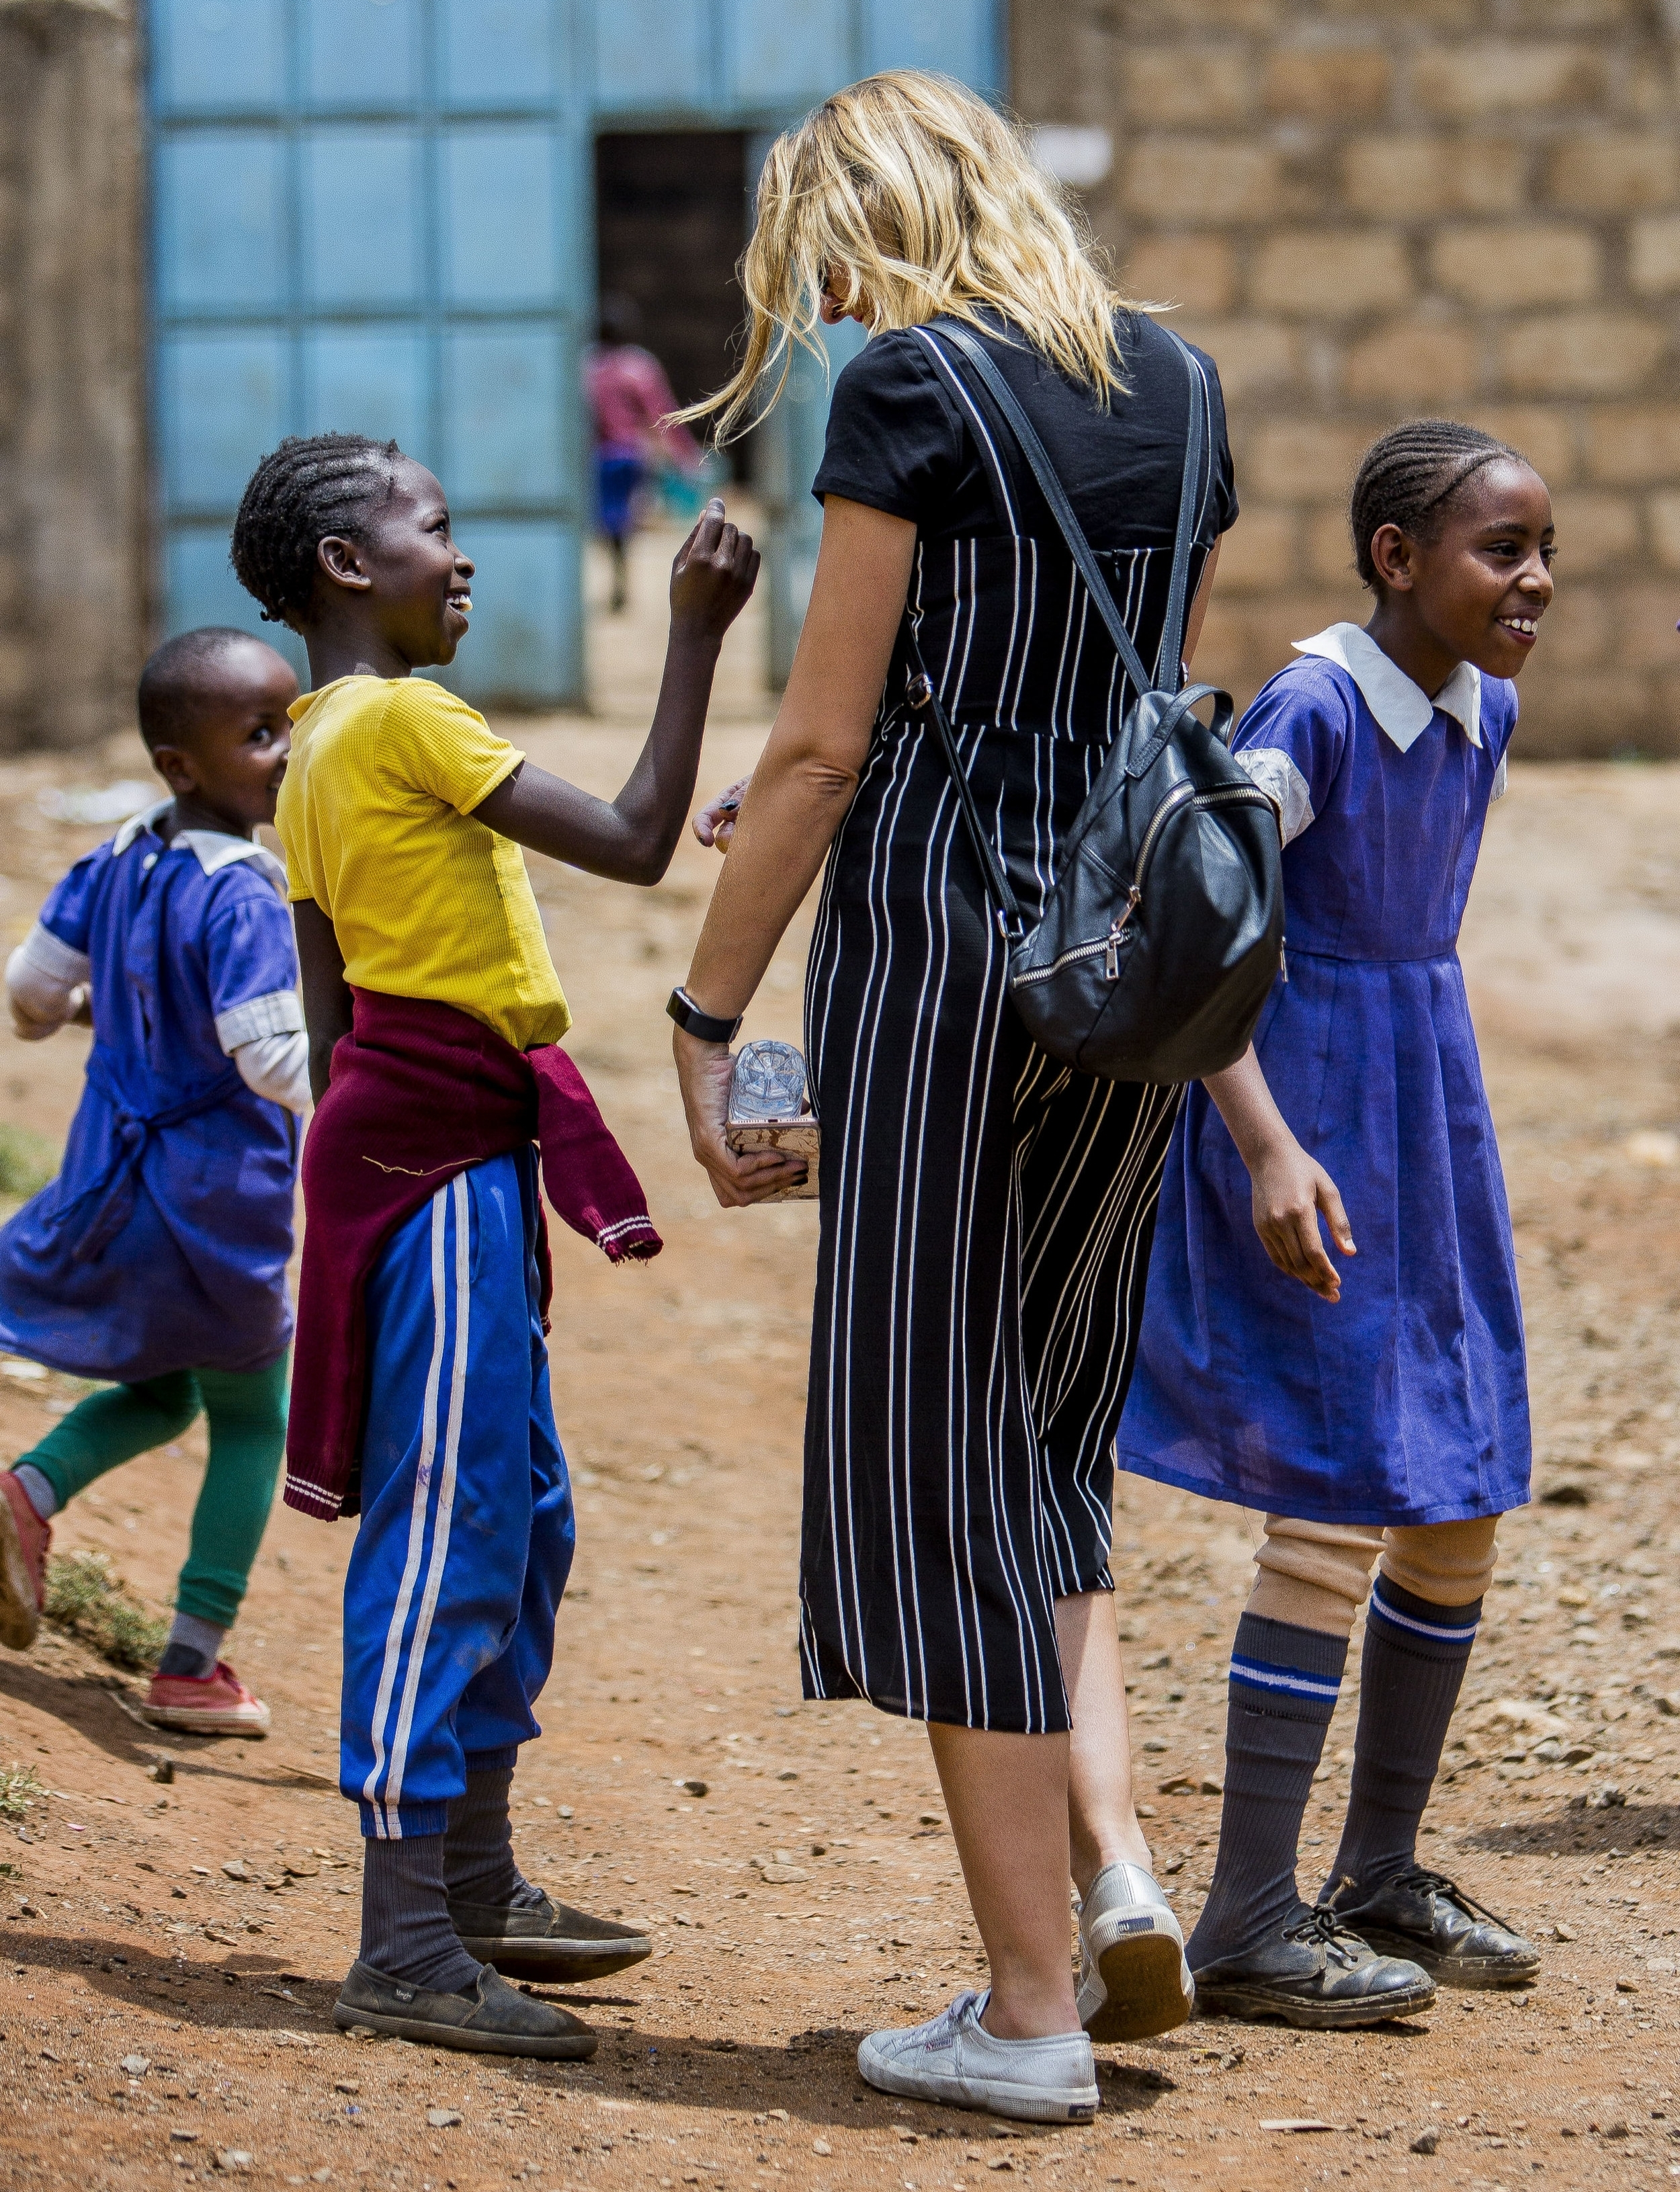 Leanne laughs with children in Mathare.